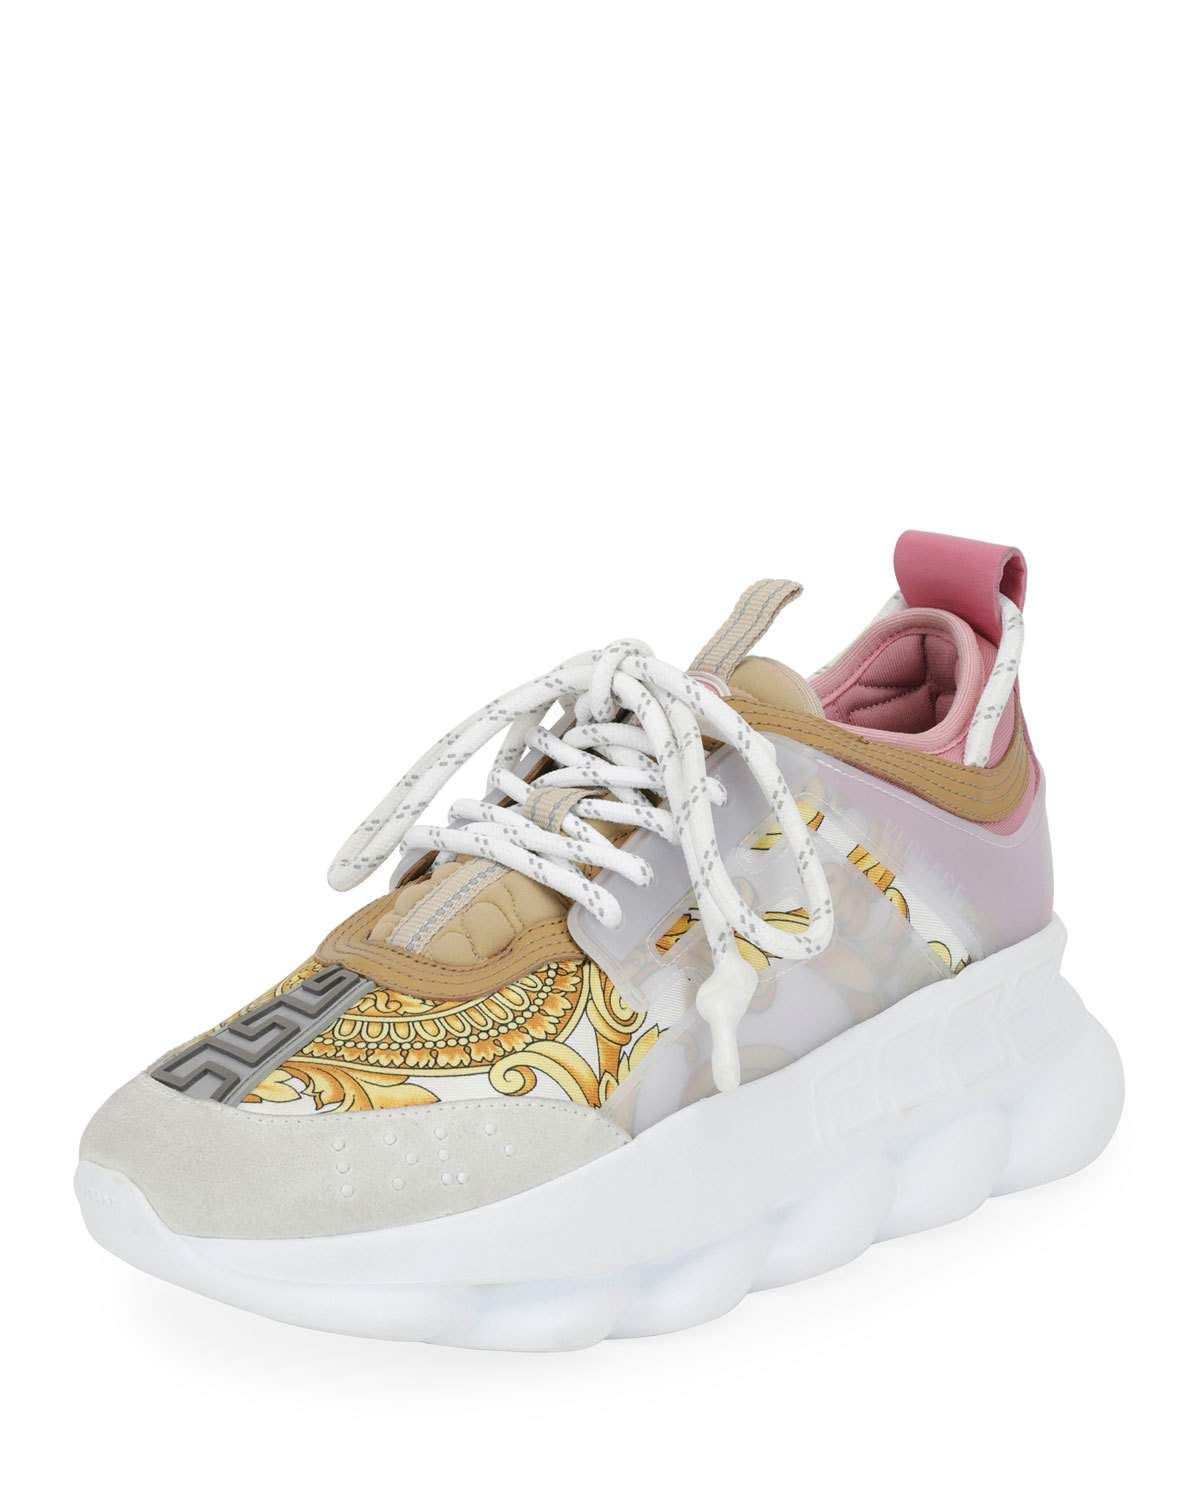 62b0d8f79 Versace Chain Reaction Barocco-Print Chunky-Heel Sneakers | Products ...